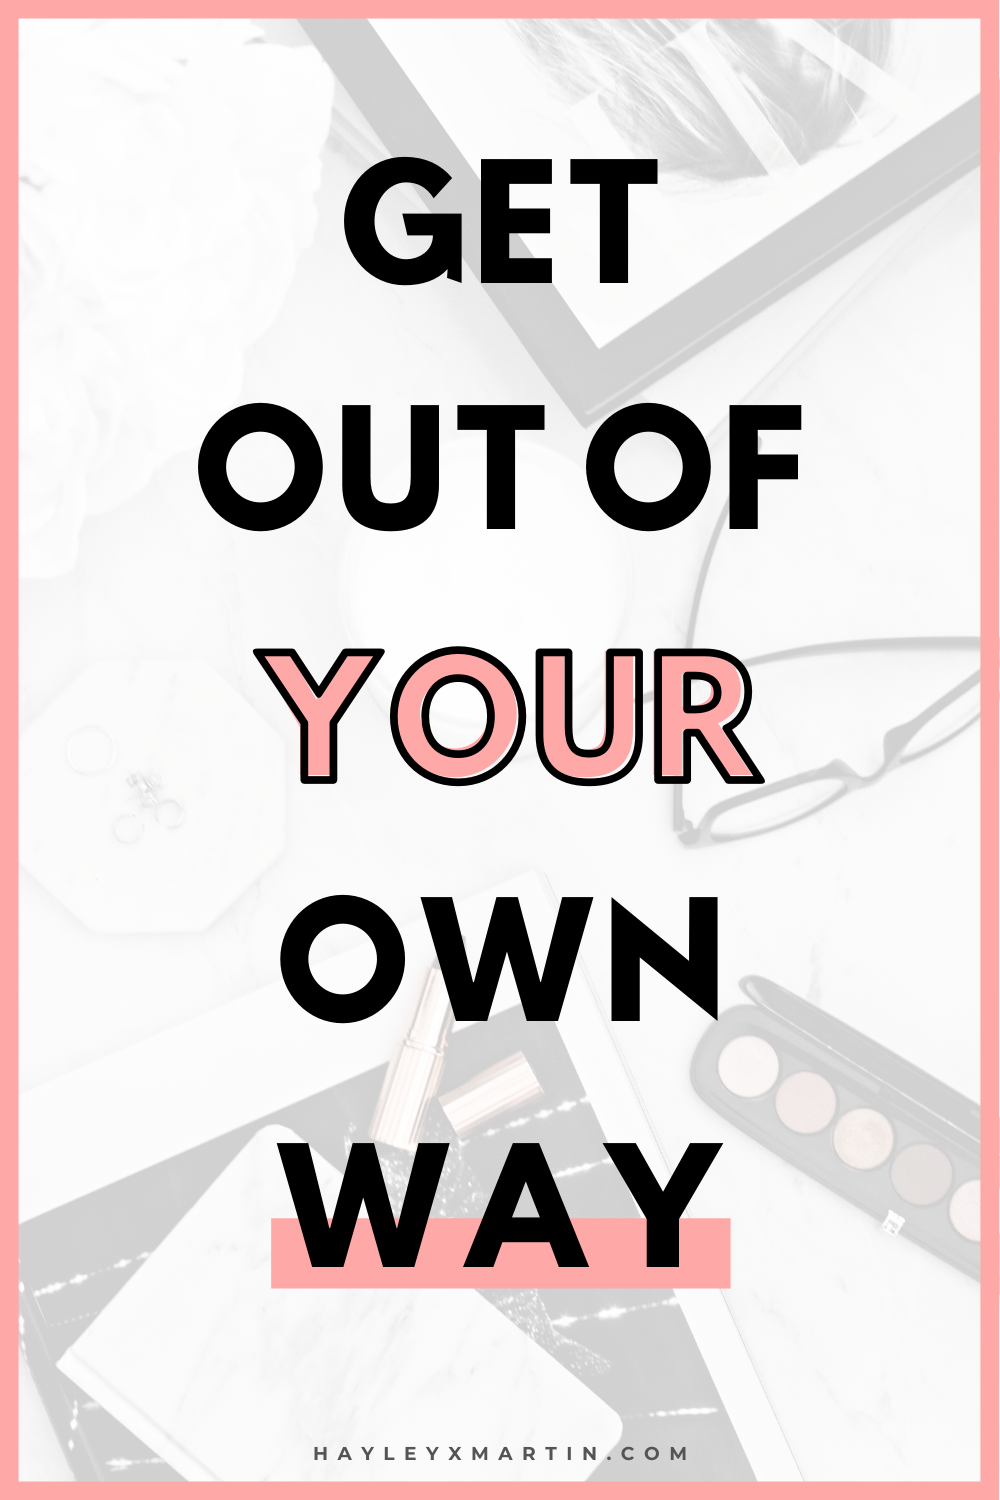 GET OUT OF YOUR OWN WAY | HAYLEYXMARTIN